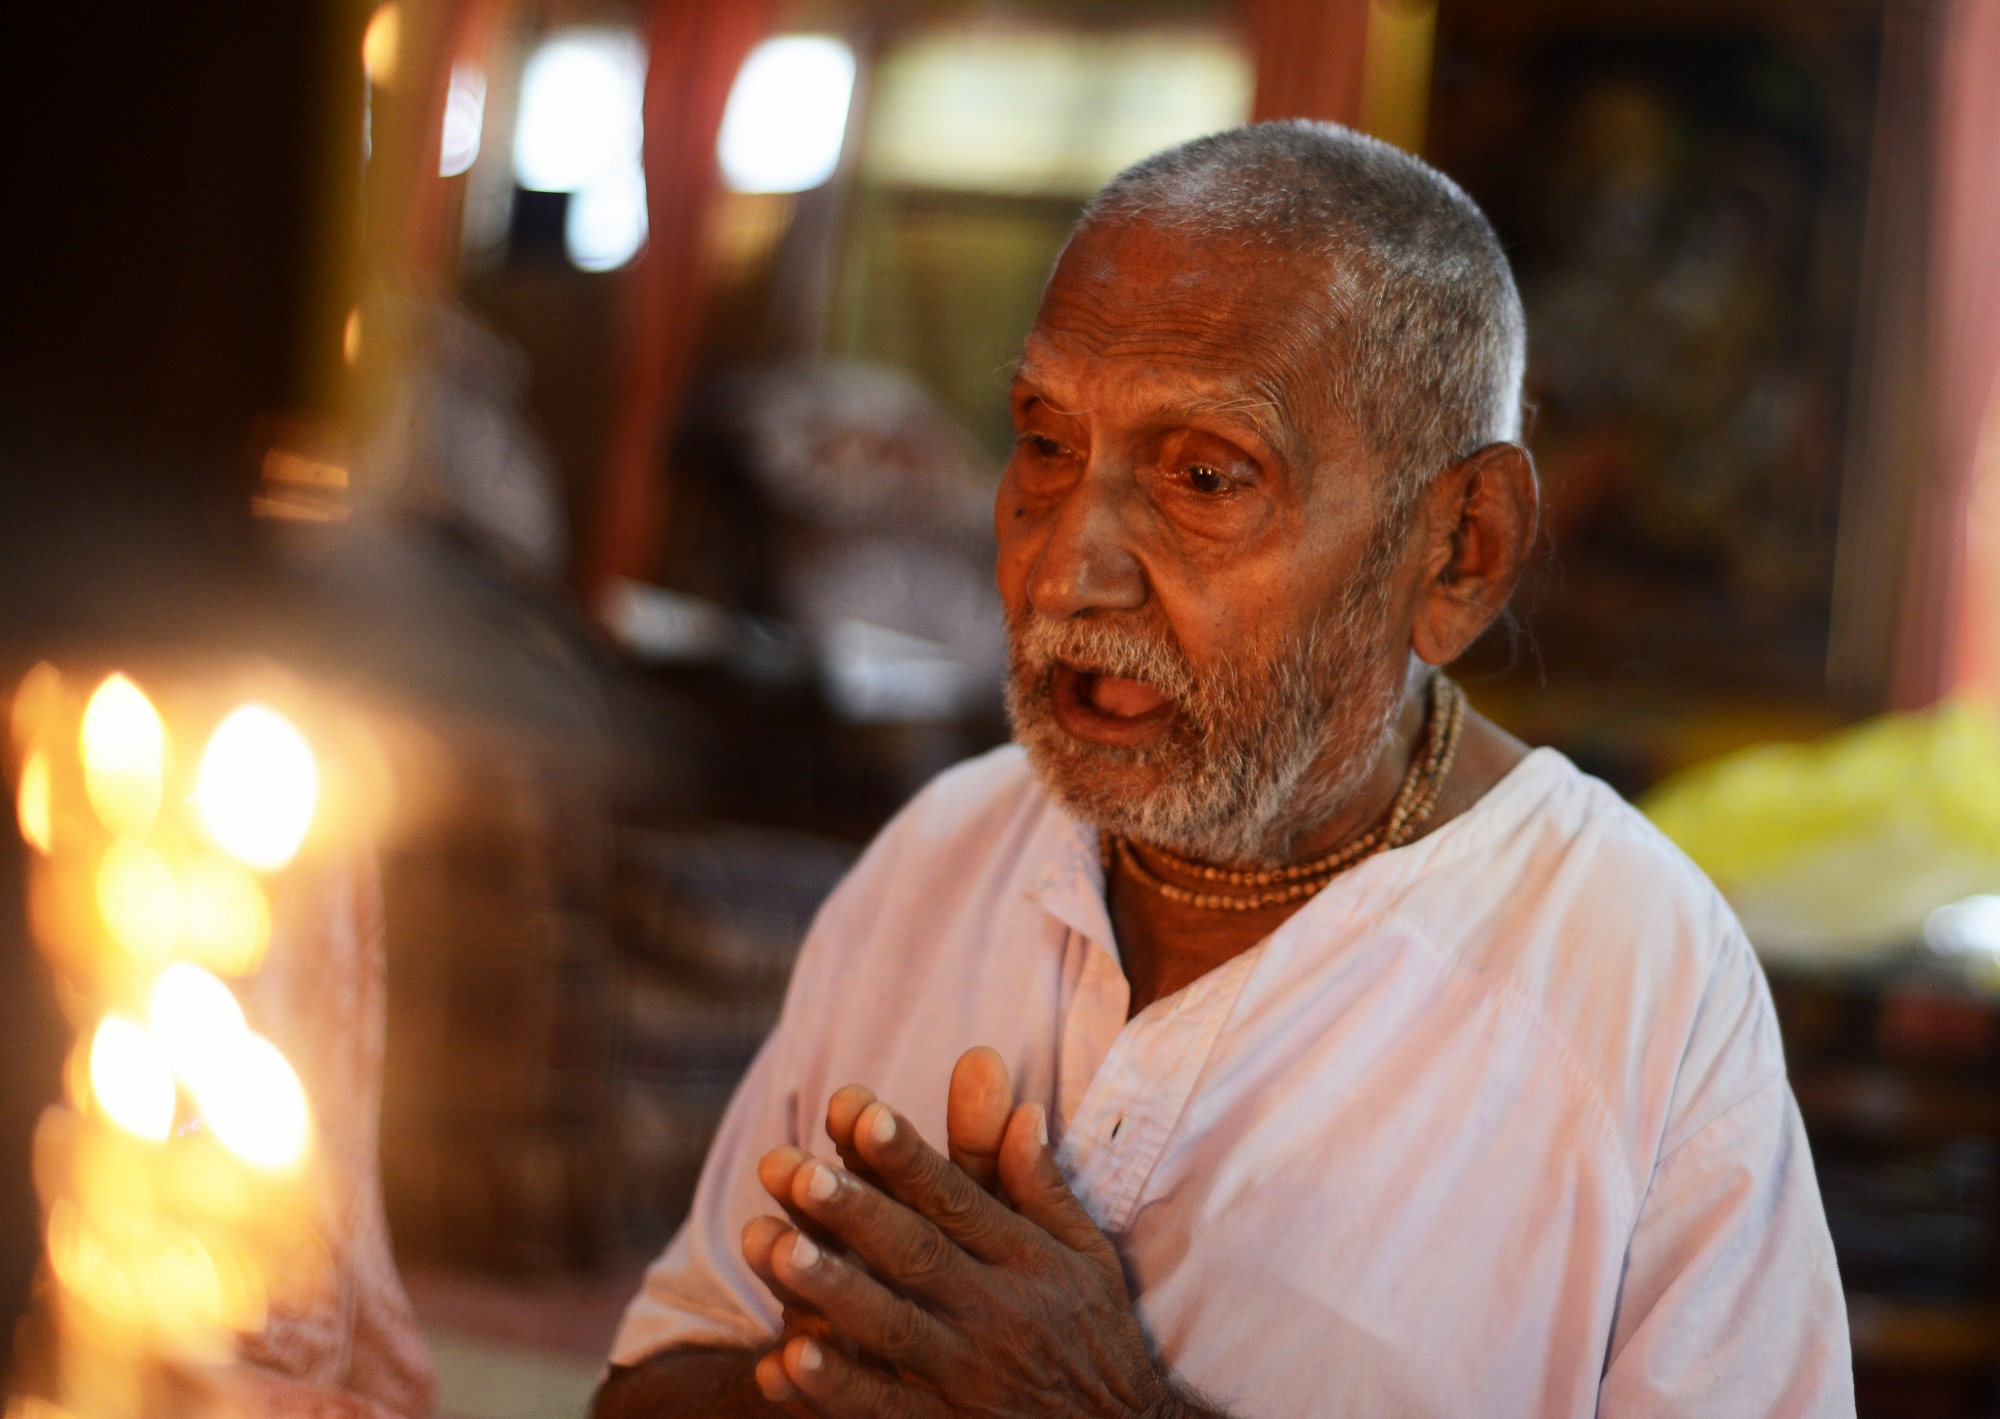 In this photograph taken on August 2, 2016, Indian monk Swami Sivananda, who claims to be 120 years old, prays ahead of performing his morning stretches and yoga in Kolkata. An Indian monk who claims to be the oldest man to have ever lived at 120 years, says he owes his longevity to daily yoga and a life without sex or spices. Born on August 8, 1896, according to his passport, Hindu monk Swami Sivananda's life has spanned three centuries. He is now applying to Guinness World Records to stake his claim to the distinction. / AFP PHOTO / Dibyangshu SARKAR / TO GO WITH AFP STORY: ' India-Lifestyle-Oldest-Man' Feature by Dibyangshu SARKAR